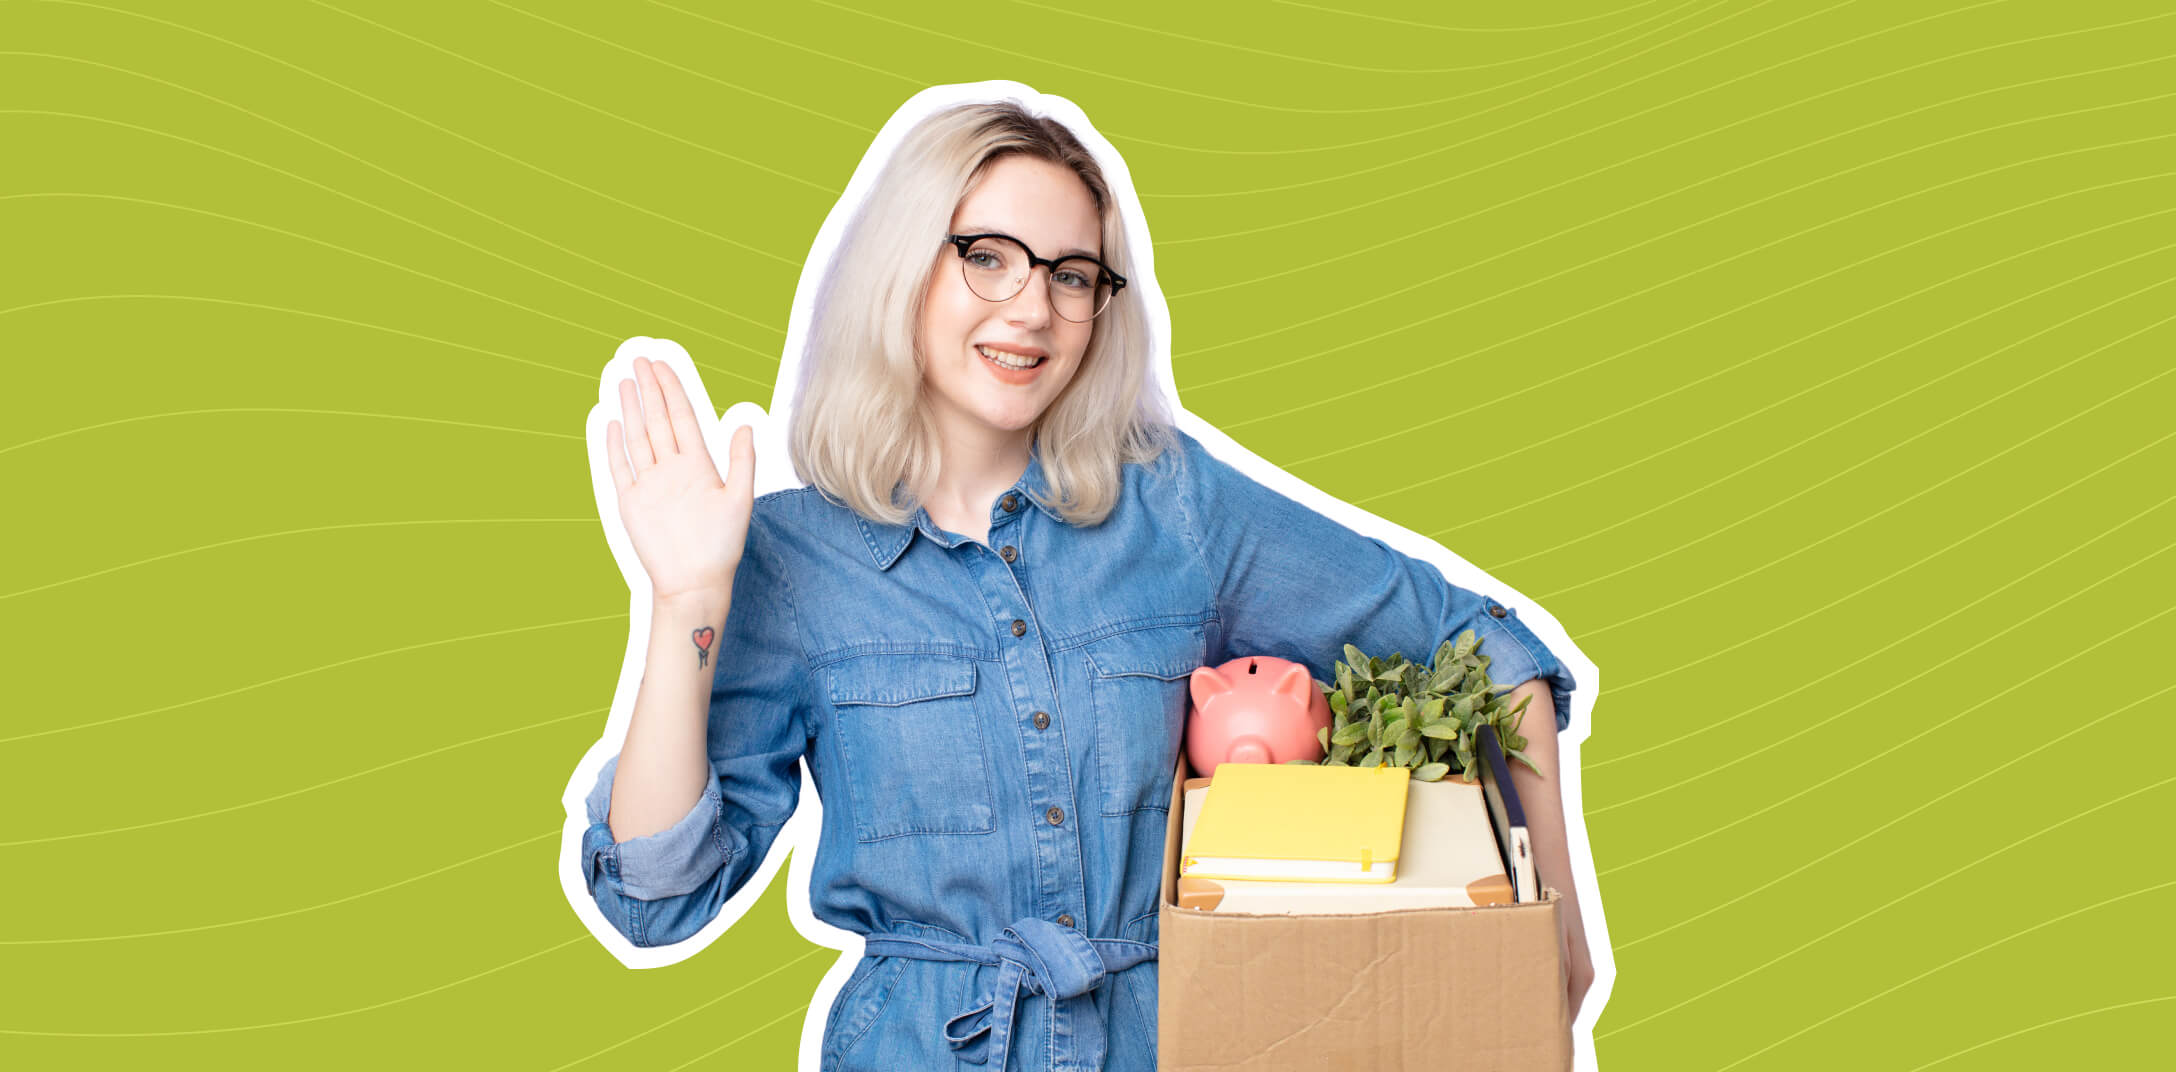 A woman holding a box with personal possessions